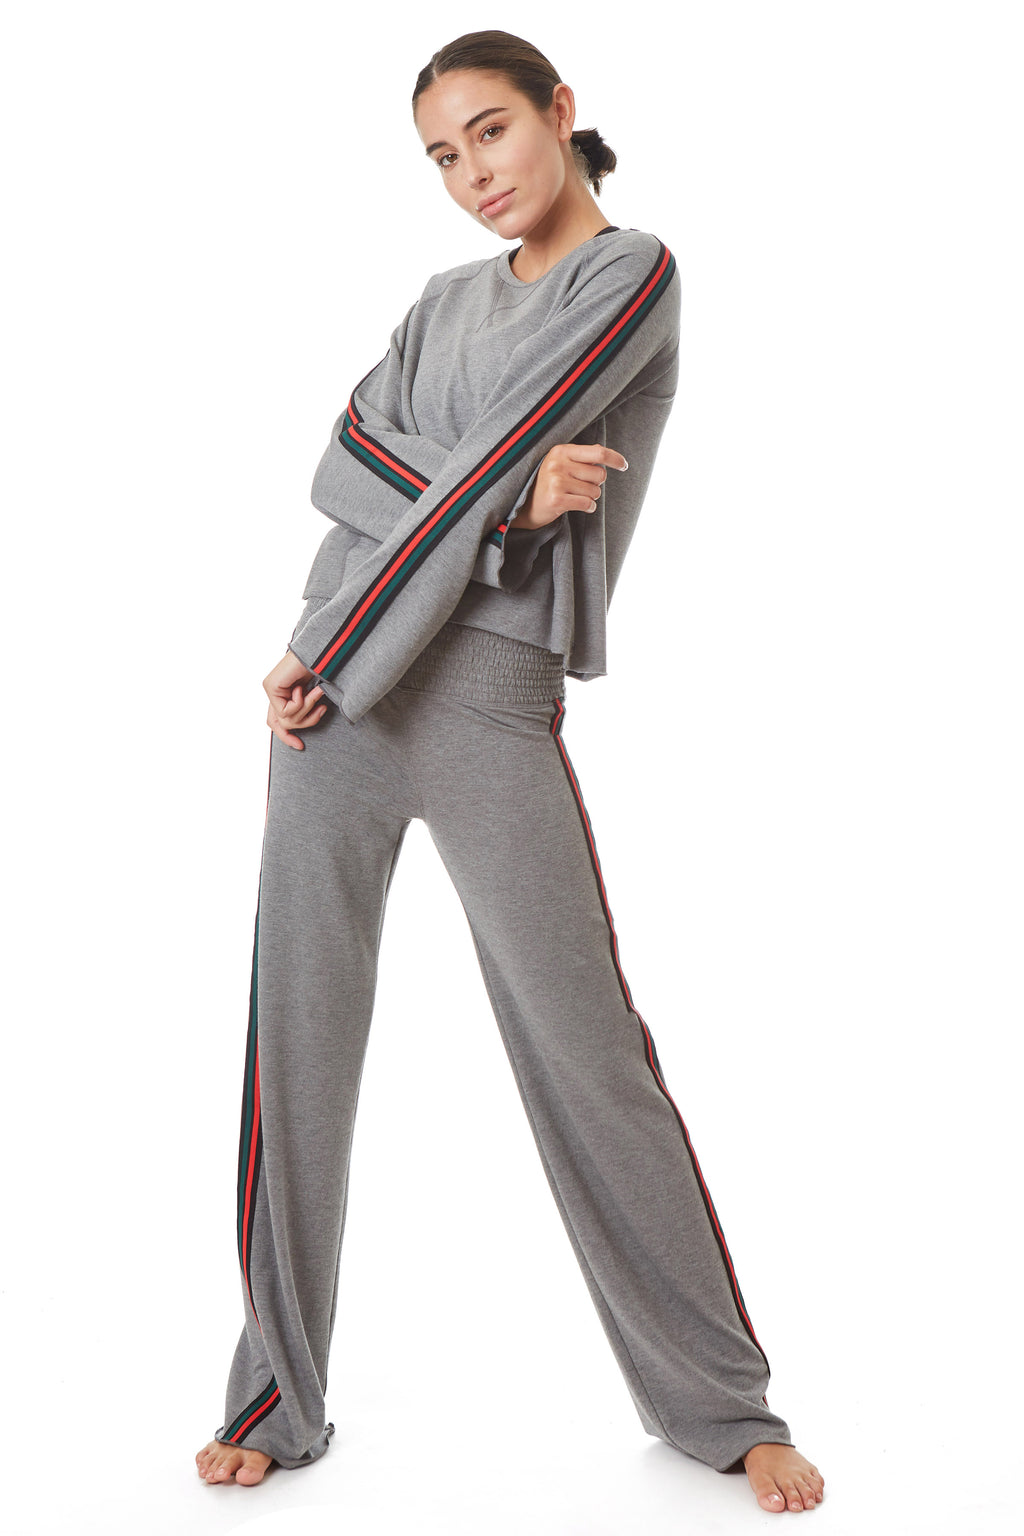 Gottex Studio Stripe Smocking Pants - Gottex Studio